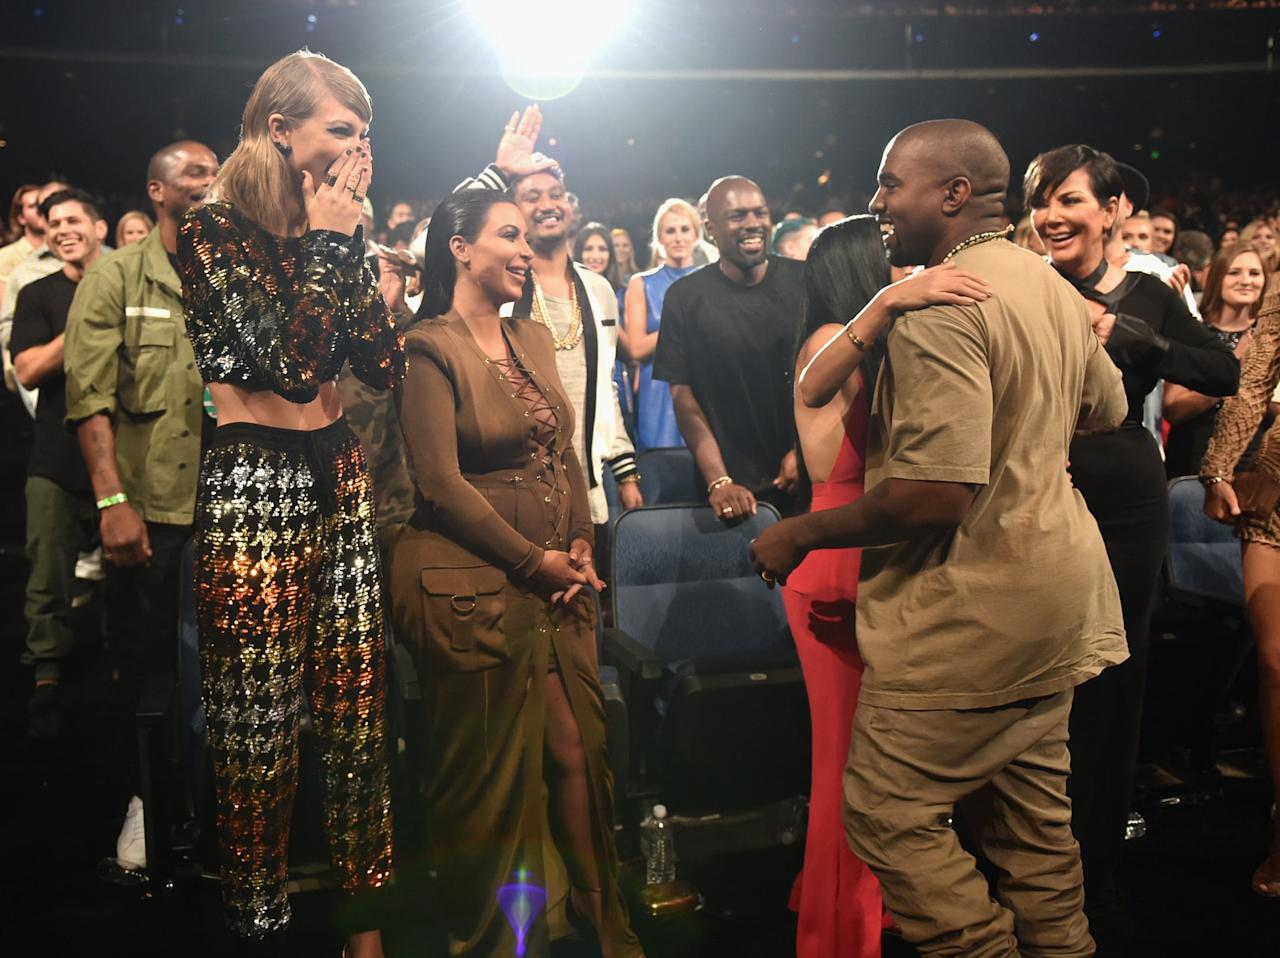 "<p>But first, a refresher: In 2016, Kanye released ""Famous,"" a song where he raps, ""I feel like me and Taylor might still have sex / I made that b*tch famous."" Taylor slammed the track upon its release and argued she was approached to share the song on Twitter but never saw its final lyrics. Kim came to her husband's defense and shared a video of a phone conversation between Taylor and Kanye, where she presumably heard the line and gave it her blessing. In response, Taylor stood her ground and added, ""I would very much like to be excluded from this narrative, one that I have never asked to be a part of, since 2009.""</p>"